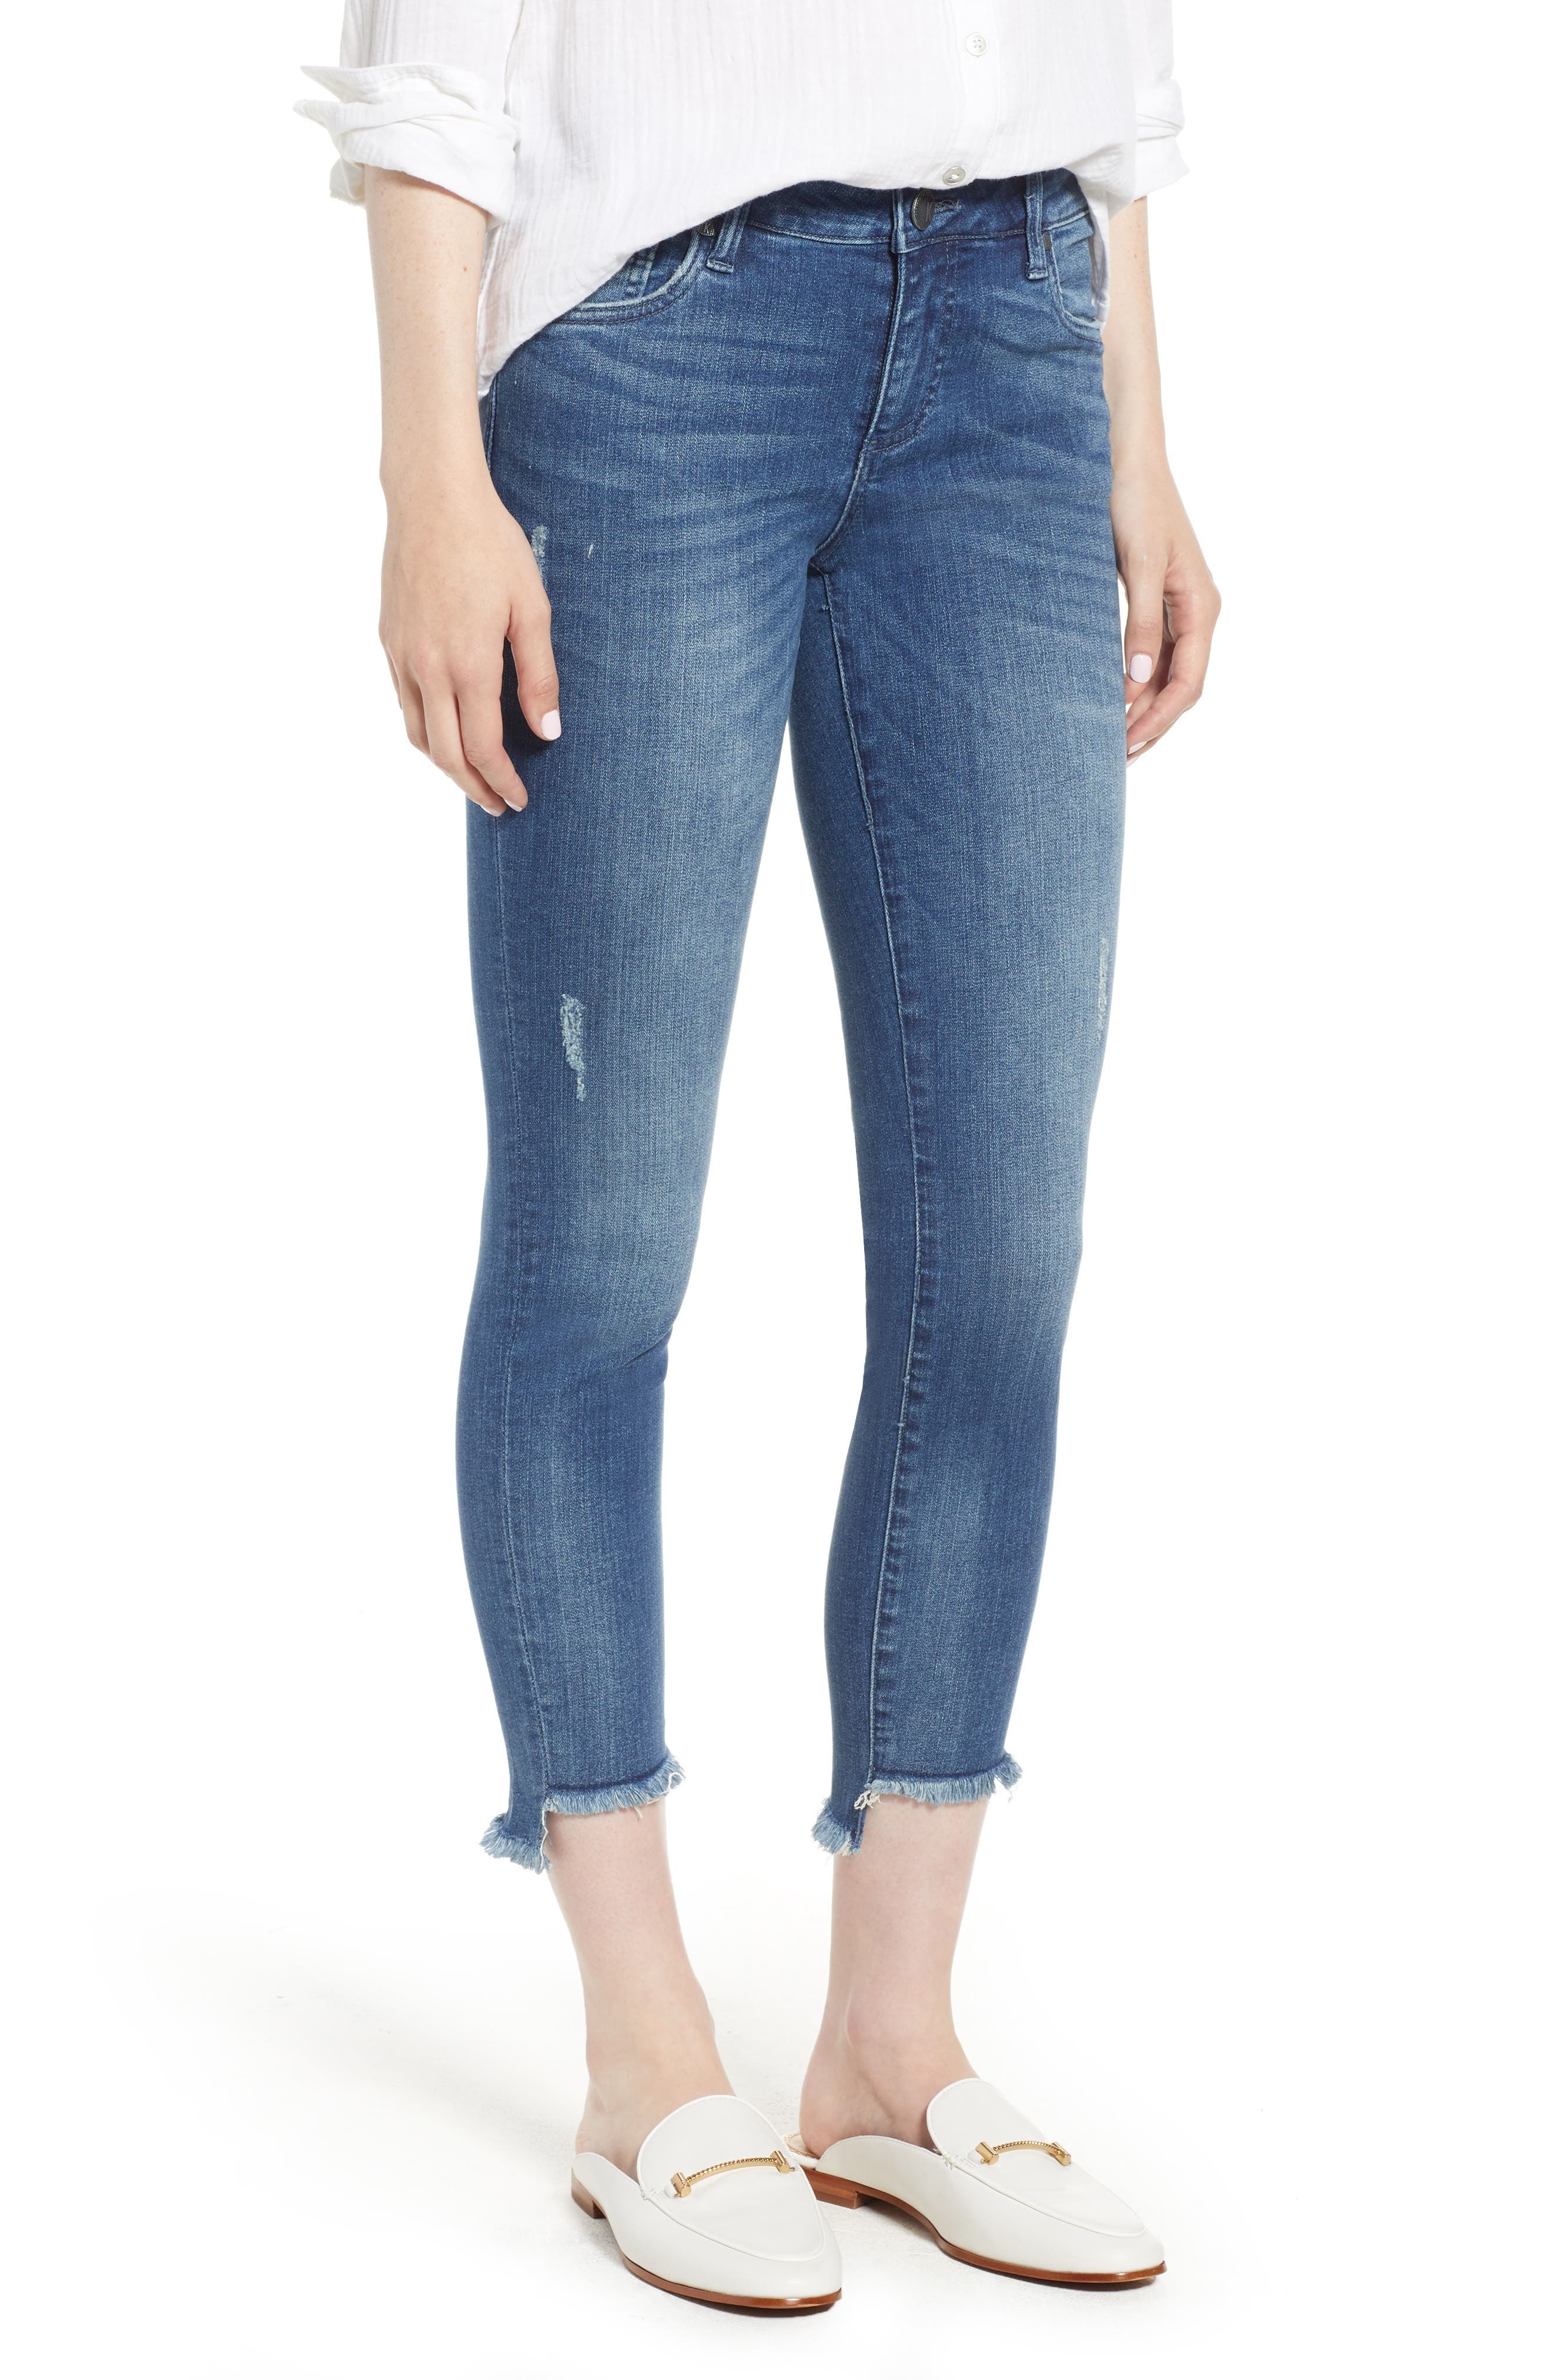 KUT from the Kloth Connie Step Hem Ankle Skinny Jeans,                             Main thumbnail 1, color,                             440